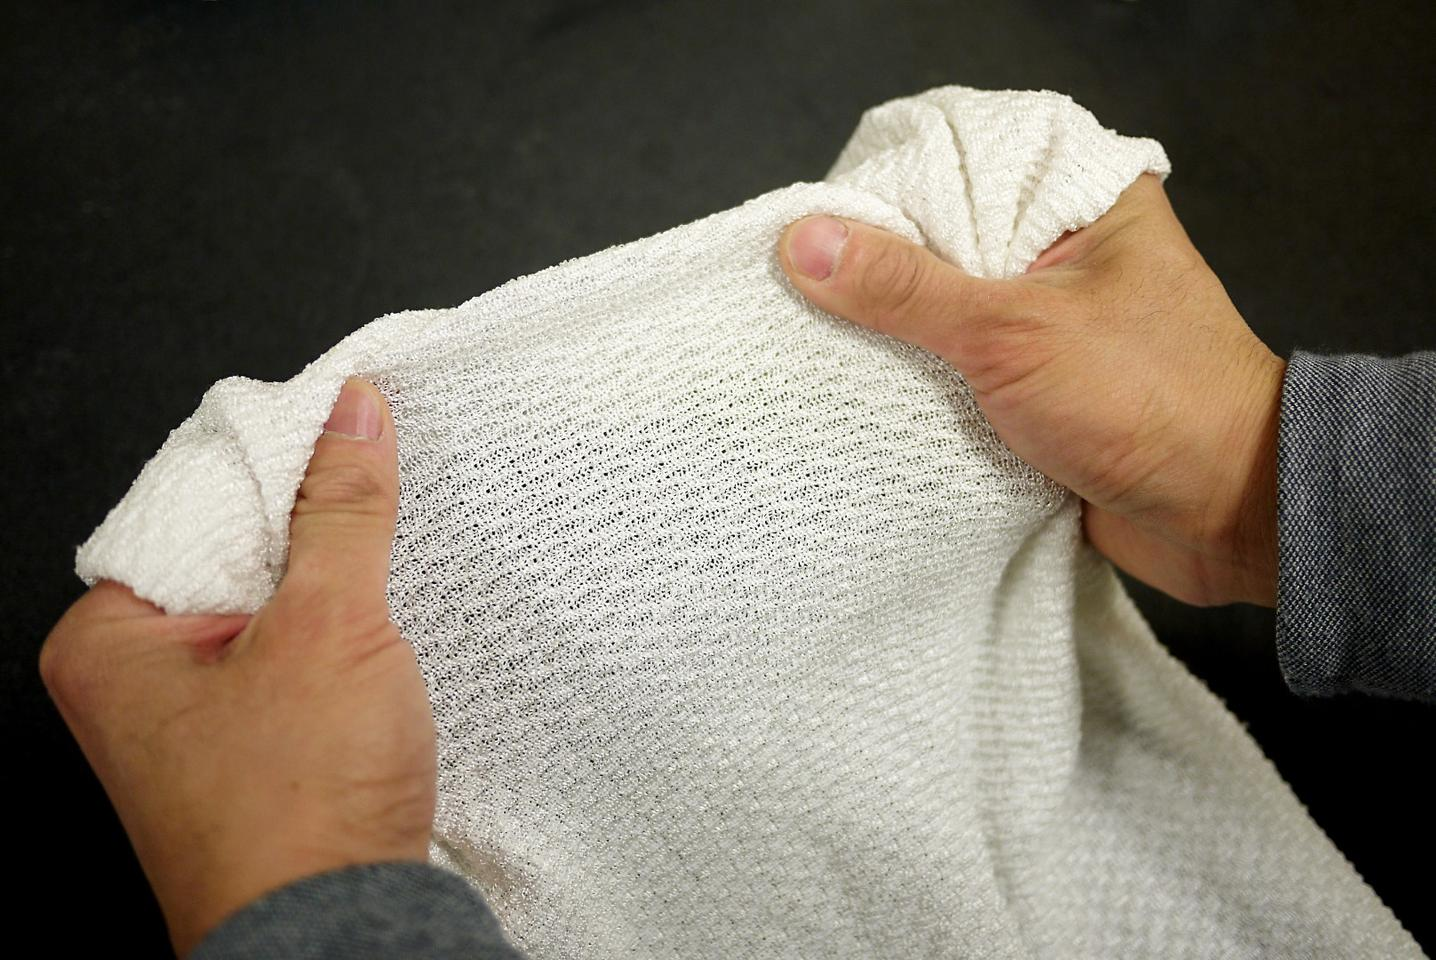 A new fabric reacts by opening its pores and changing the way it electromagnetically responds to infrared